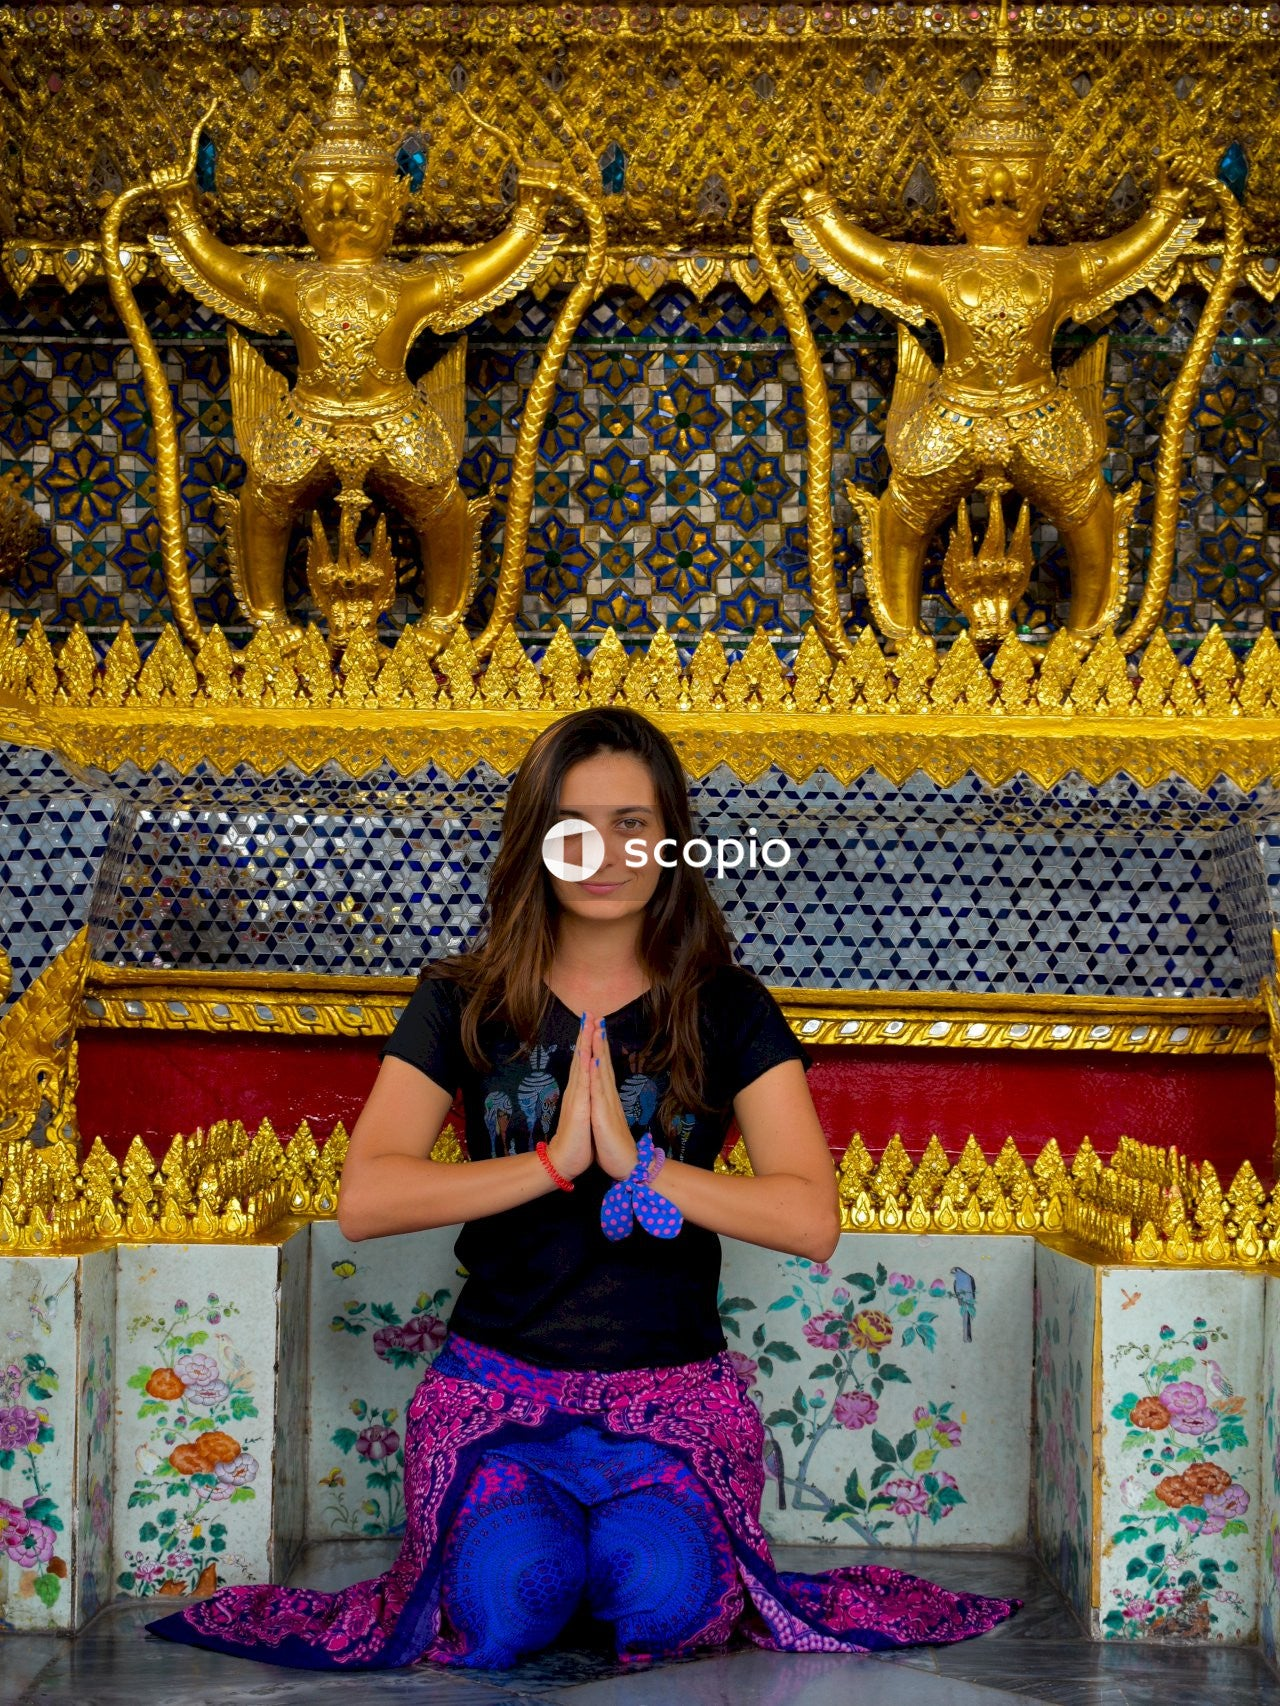 Woman in blue shirt and purple skirt standing near gold and red dragon wall